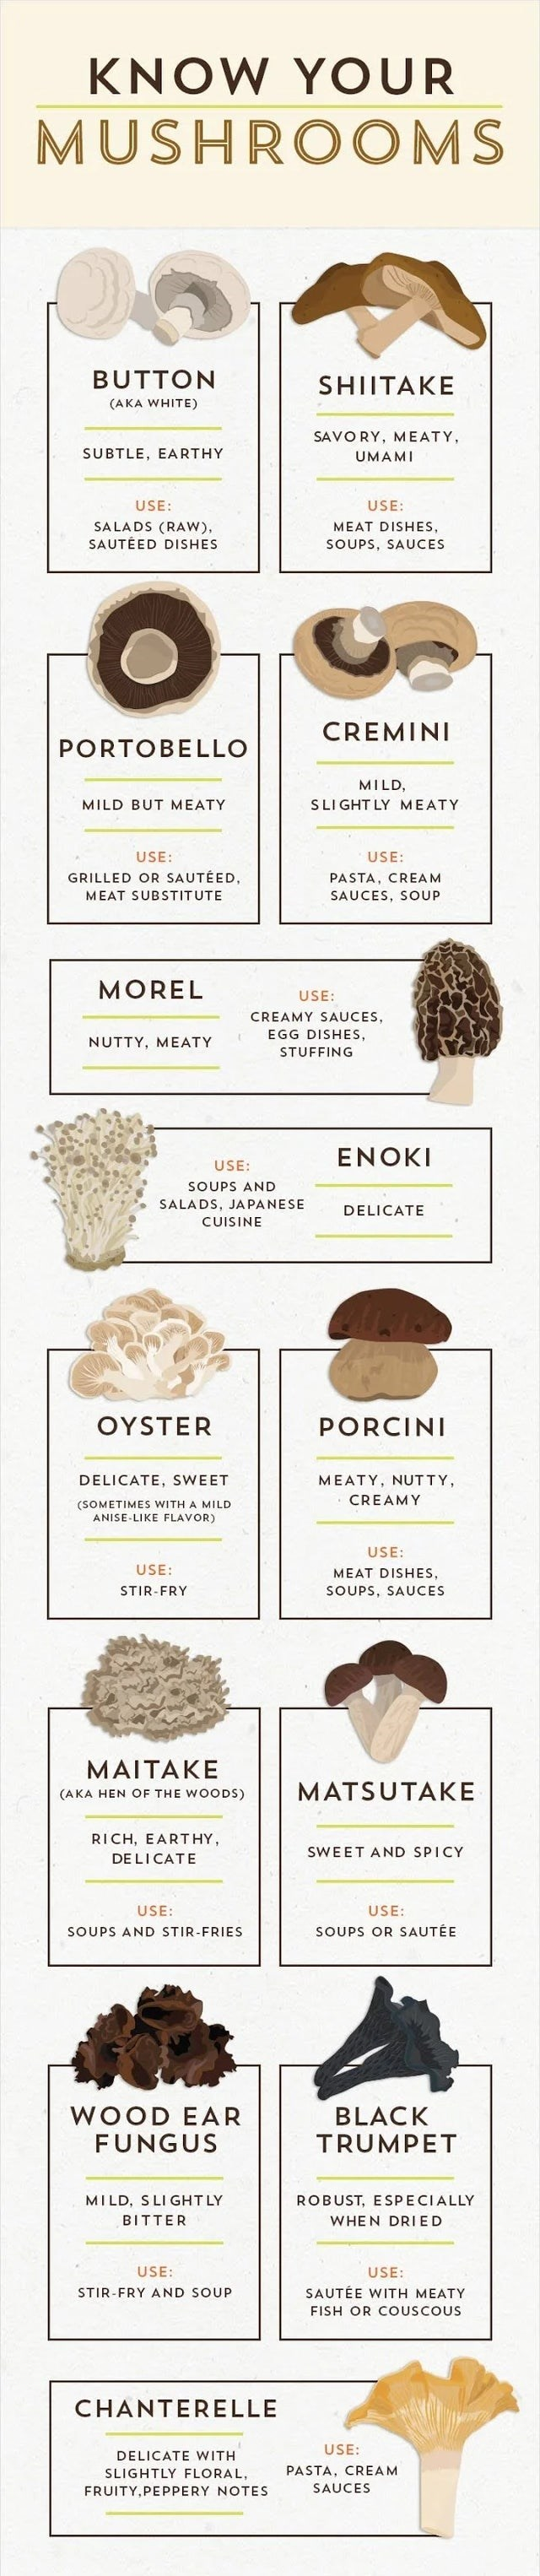 top ten daily infographics guides | KNOW MUSHROOMS BUTTON SHIITAKE (AKA WHITE) SAVORY, MEATY, SUBTLE, EARTHY UMAMI USE: USE: SALADS (RAW SAUTÉED DISHES MEAT DISHES, SOUPS, SAUCES CREMINI PORTOBELLO MILD, MILD BUT MEATY SLI GHT LY MEATY USE: USE: GRILLED OR SAUTÉED, PASTA, CREAM SAUCES, SOUP MEAT SUBSTITUTE MOREL USE: CREAMY SAUCES, EGG DISHES, NUTTY, MEATY STUFFING ENOKI USE: SOUPS AND SALADS, JAPANESE DELICATE CUISINE OYSTER PORCINI DELICATE, SWEET MEATY, NUTTY, CREAMY (SOMETIMES WITH MILD ANIS